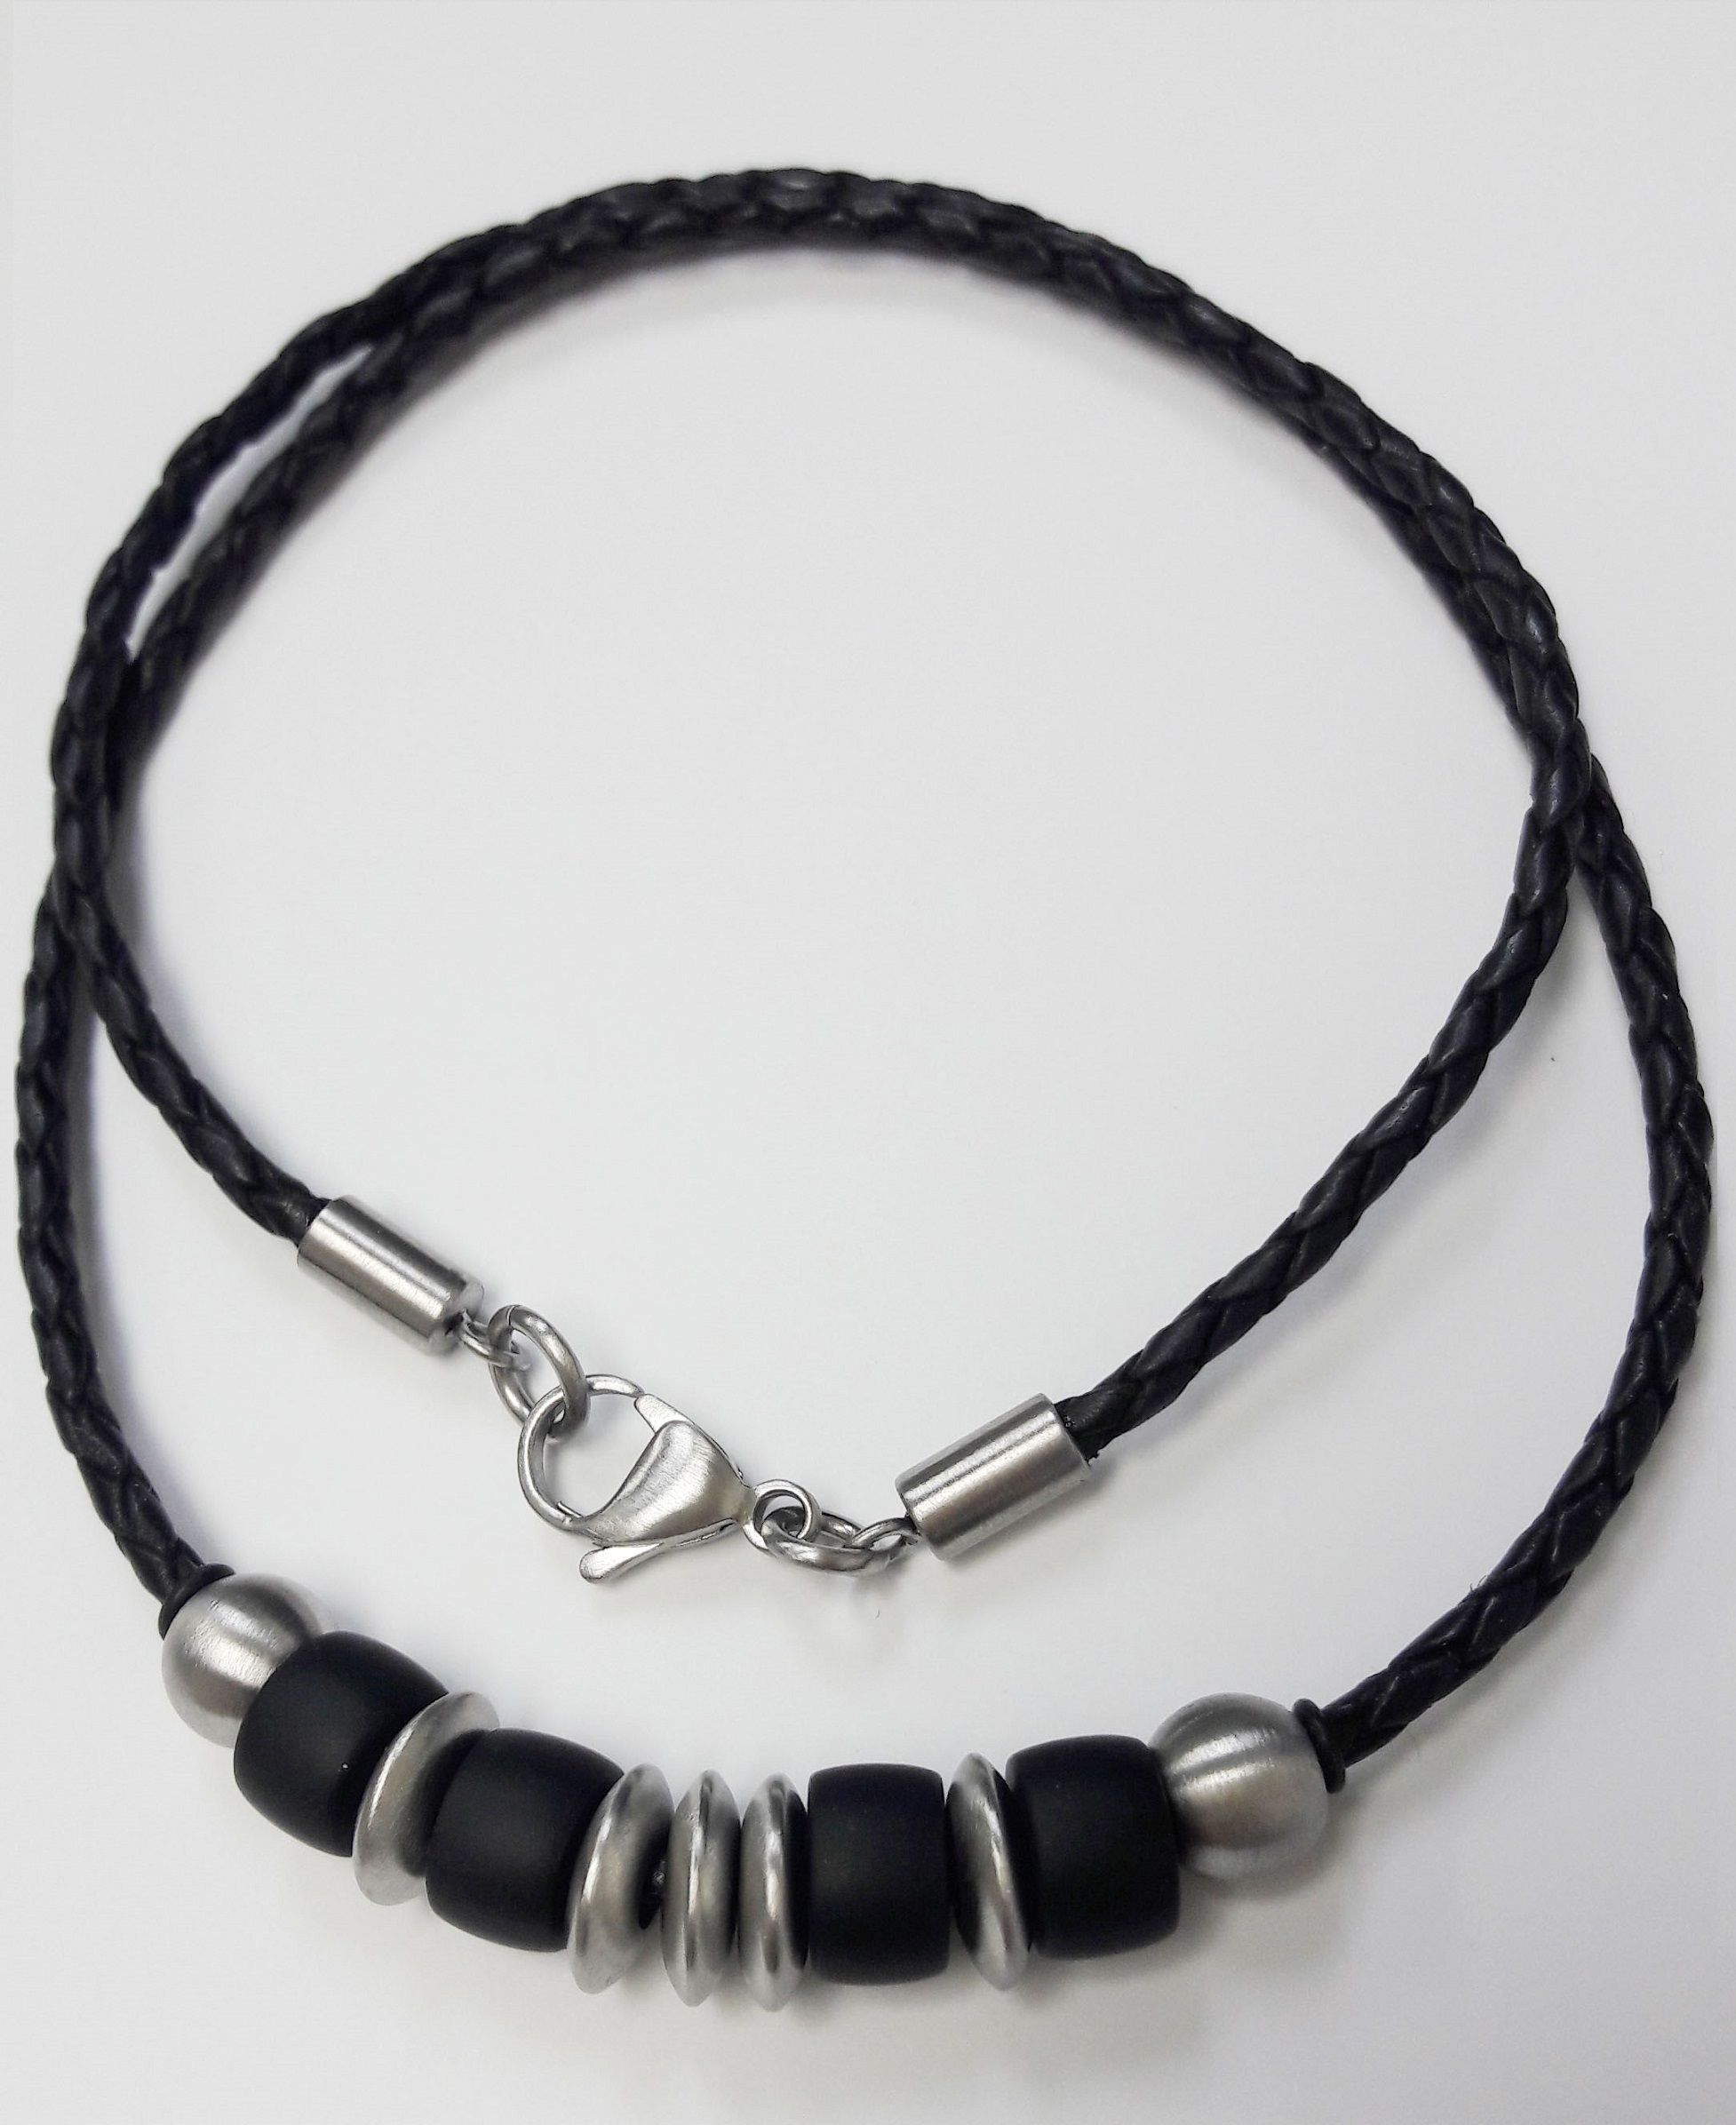 store getty necklace recycled leather the products